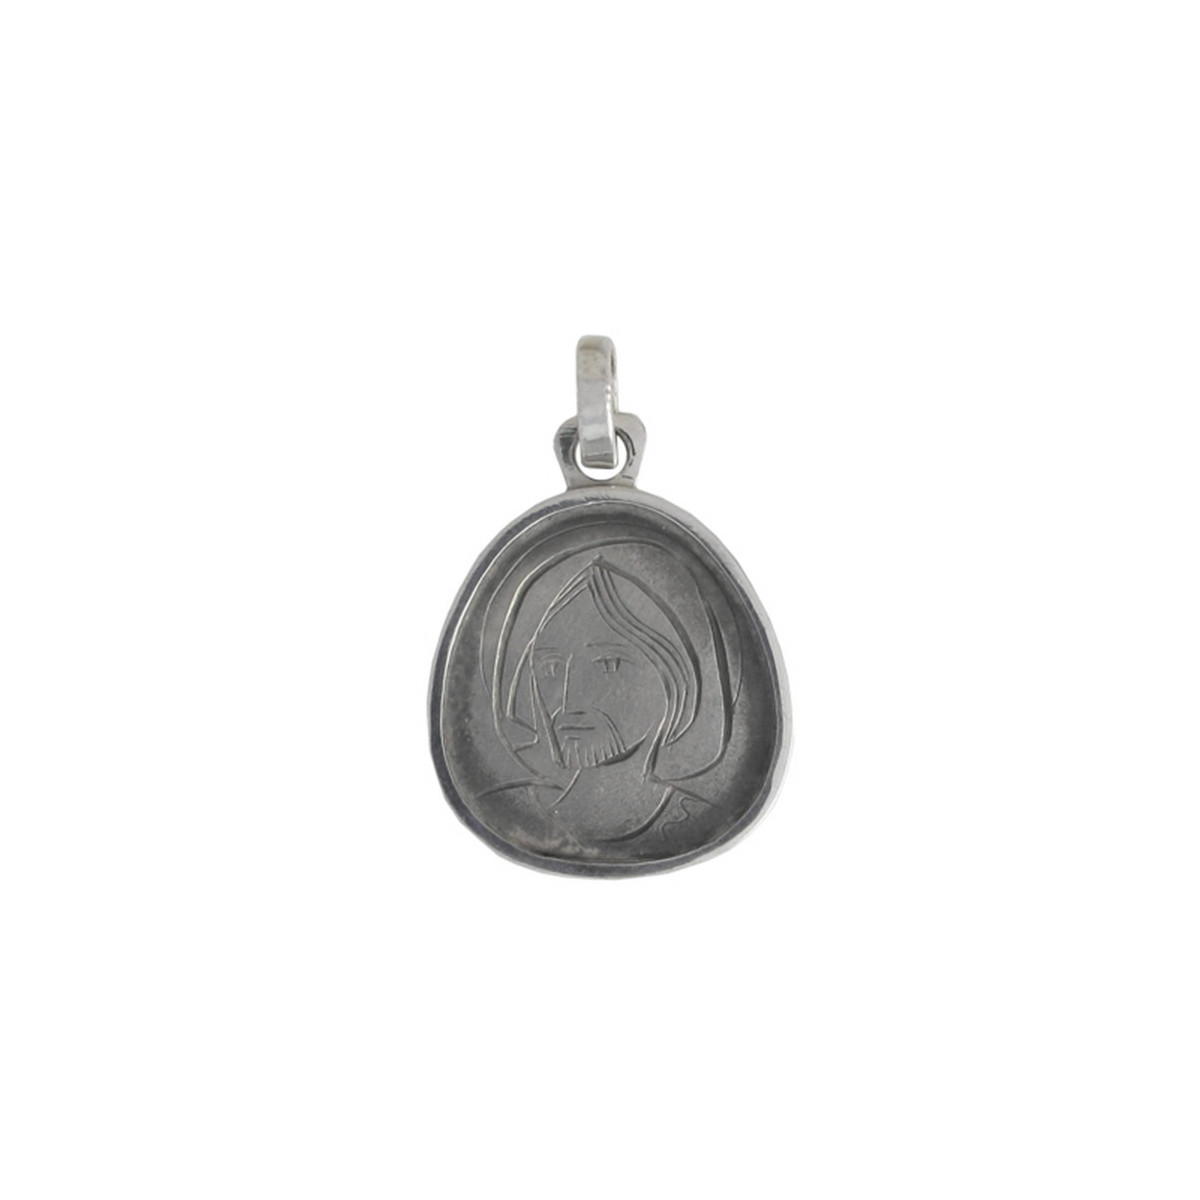 SILVER SCAPULAR WITH BEVEL